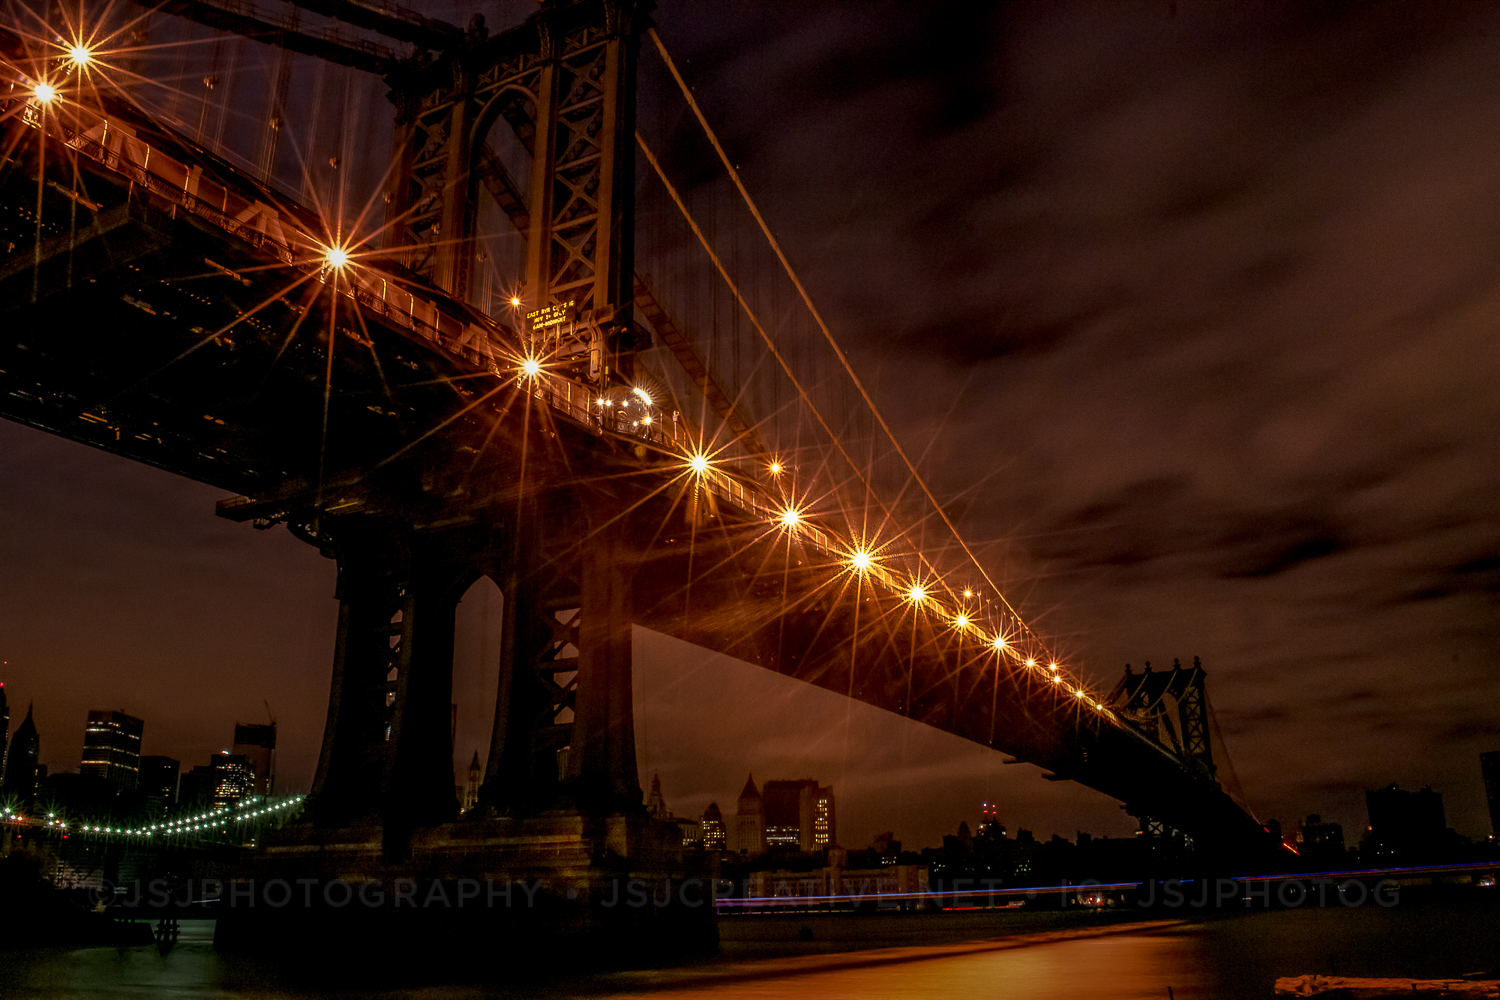 FINAL-JSJ_ManhattanBridge_SandyBlackout_DSC0044JSJPHOTO_PORTS_030817